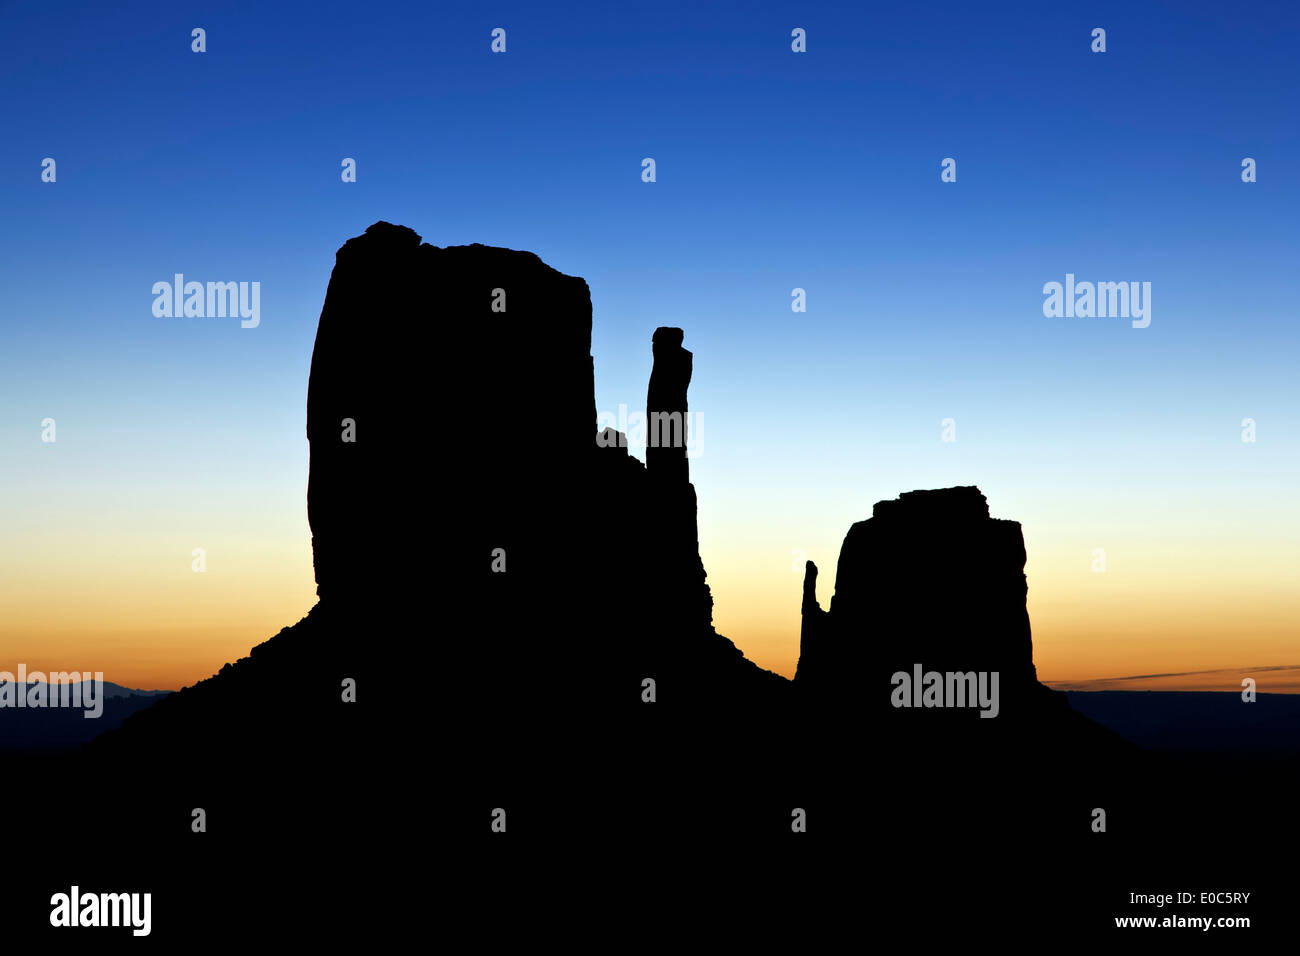 The Mittens silhouetted against morning sky, Monument Valley, Arizona Utah border USA - Stock Image